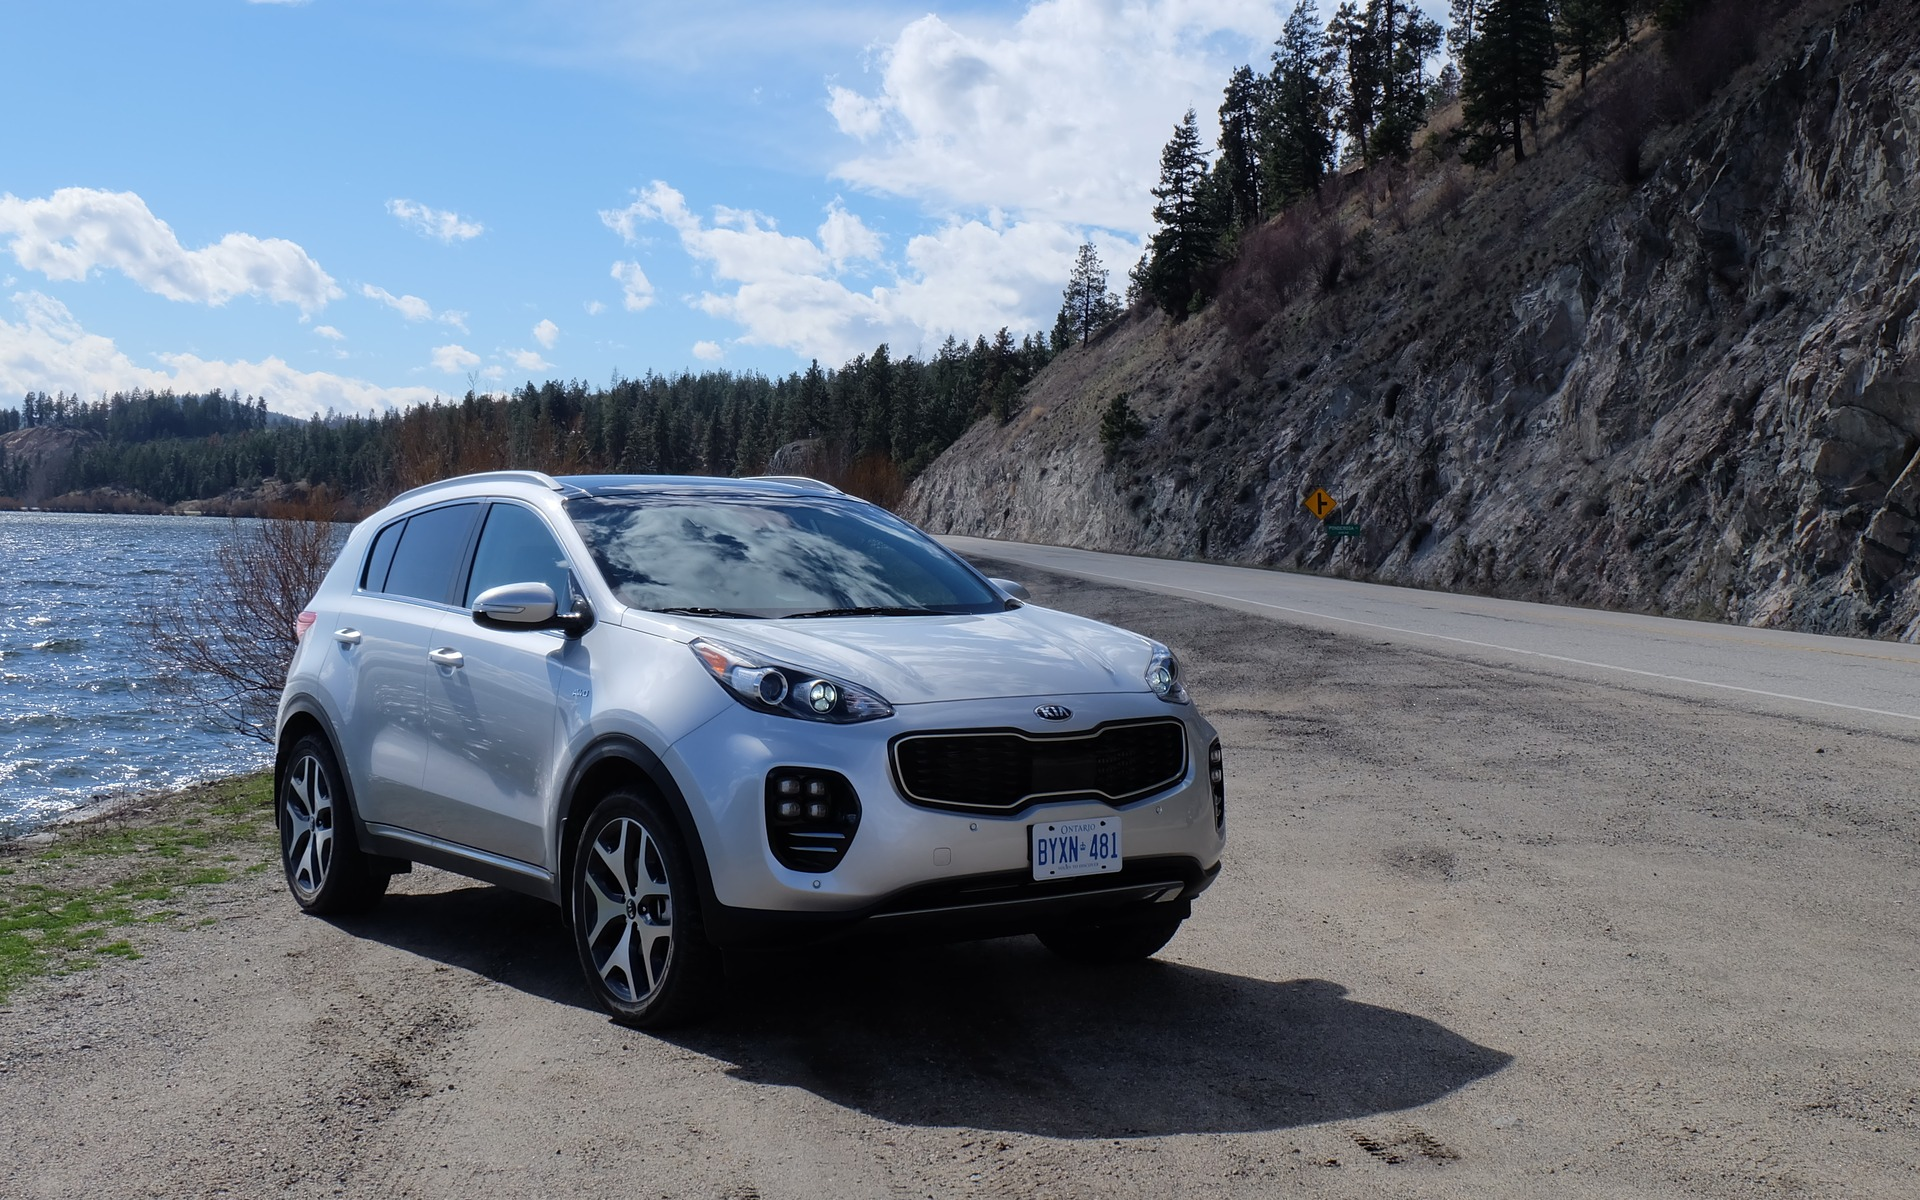 Tucson Dimensions 2017 >> 2017 Kia Sportage: Threatening the Top Contenders - The Car Guide